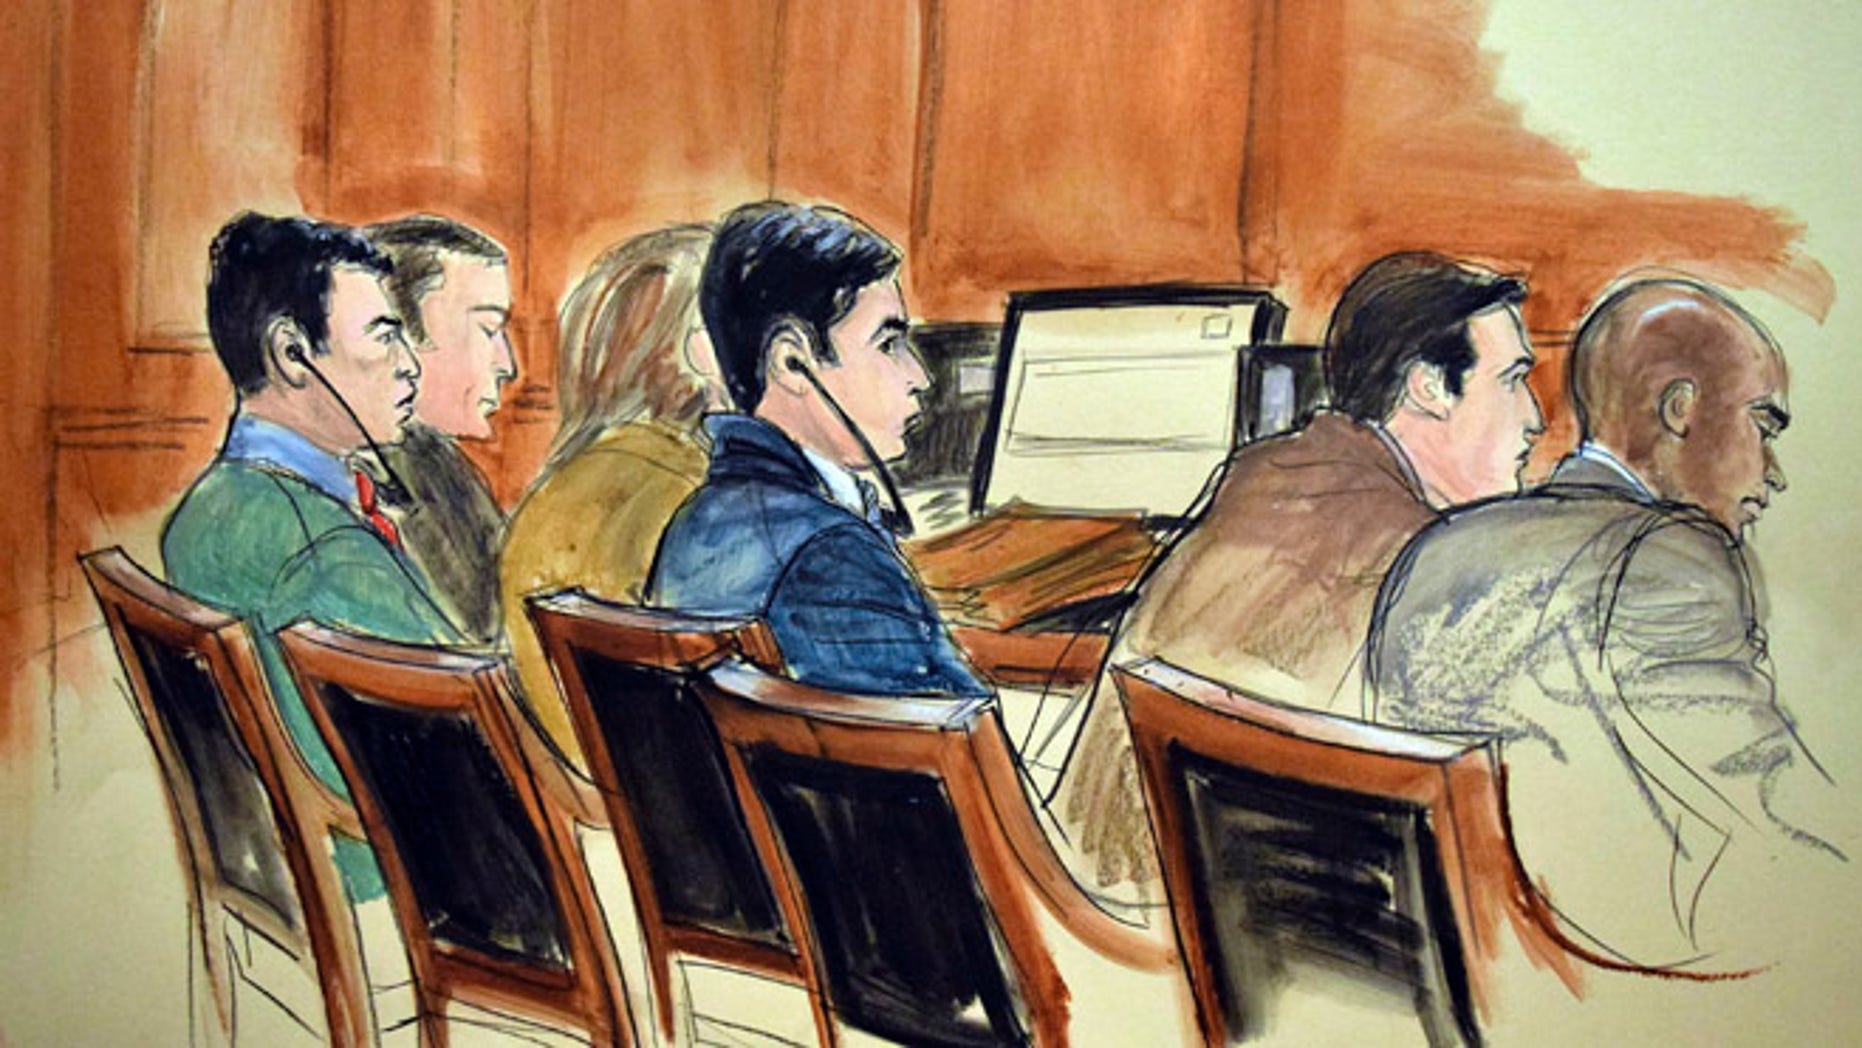 FILE - In this Nov. 14, 2016 courtroom file sketch, the drug trial of two nephews of Venezuela's first lady proceeds in New York with, from left, Francisco Flores, with earphones and Efrain Campo, with earphones. The government's star informants in the case are duplicitous liars according to defense lawyers, and prosecutors learned that while working for the DEA, the witnesses Santos-Pena and Santos-Hernandez were also hard at work smuggling drugs themselves. (AP Photo/Elizabeth Williams, File)